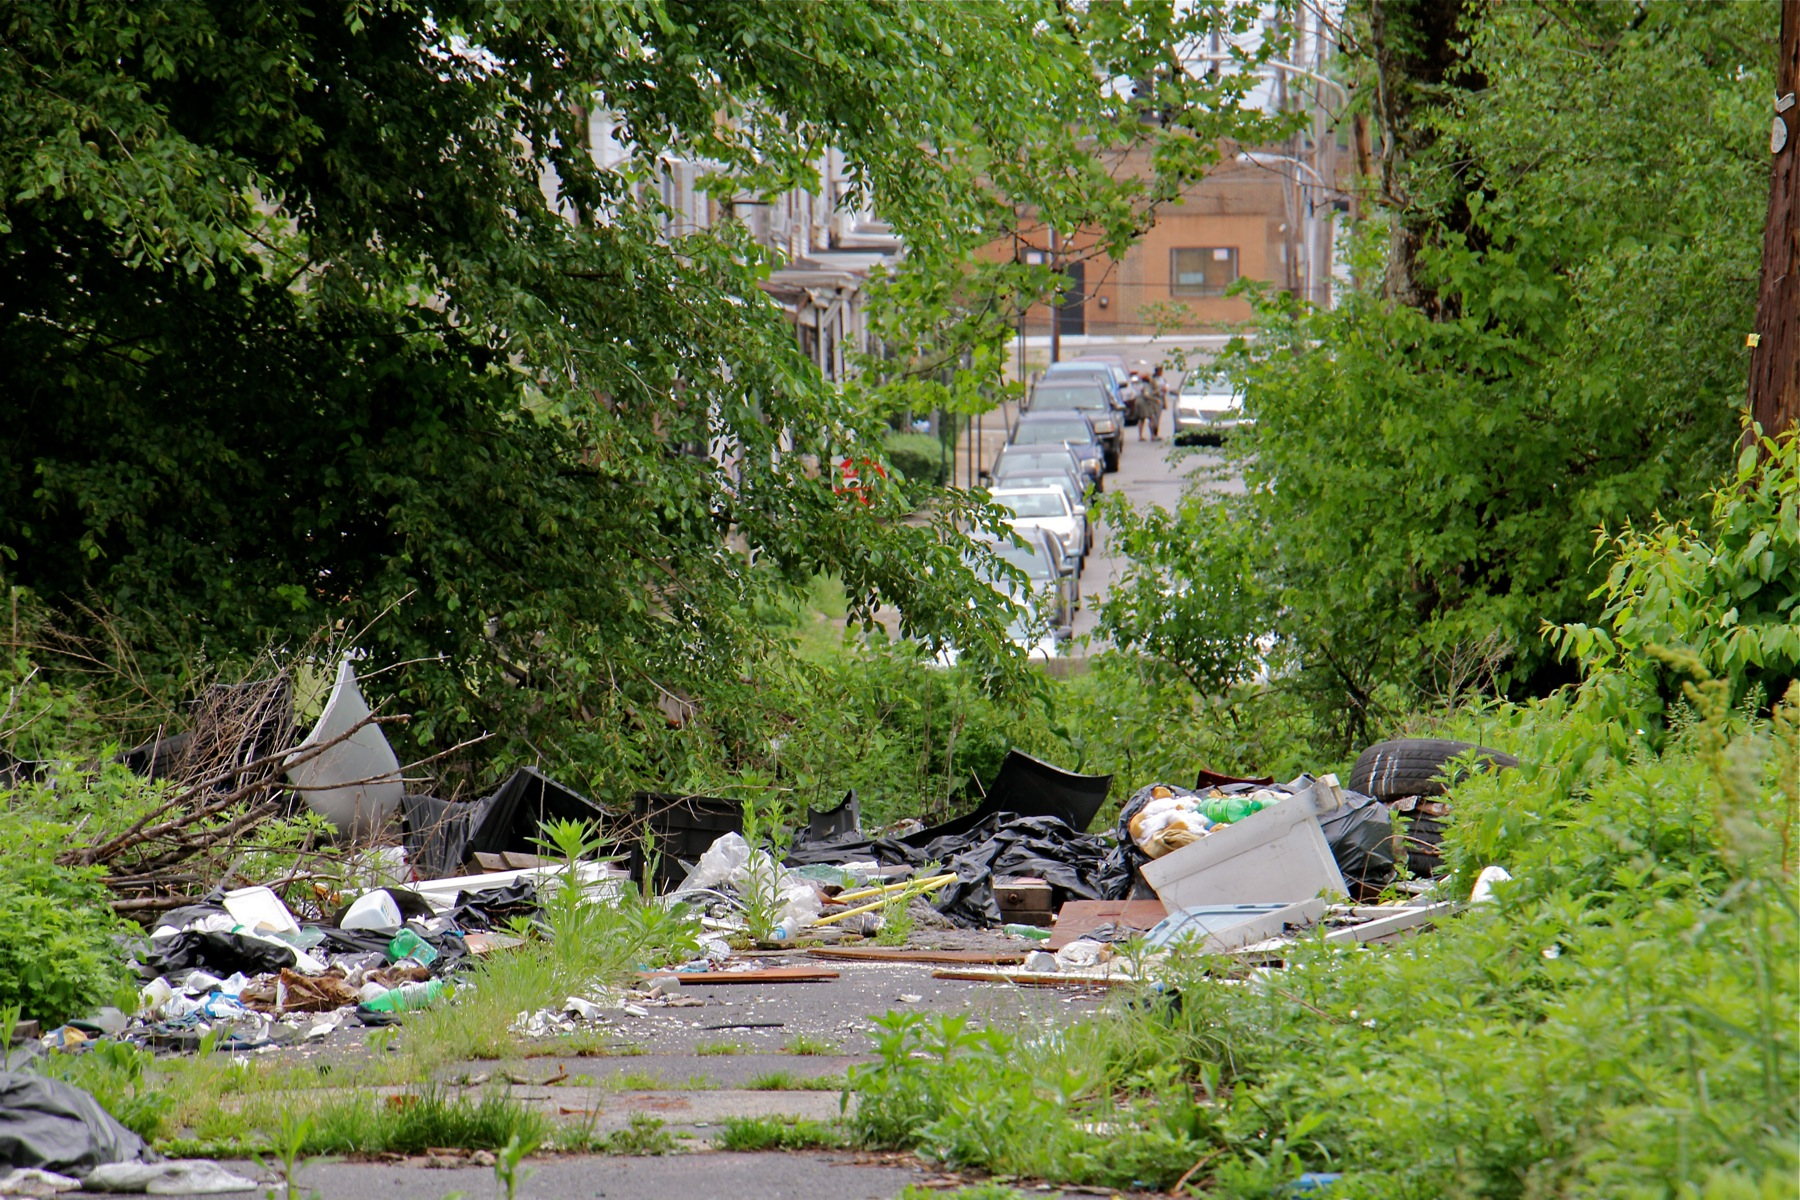 Dumping at the Logan Triangle takes place at the edge of a residential neighborhood.